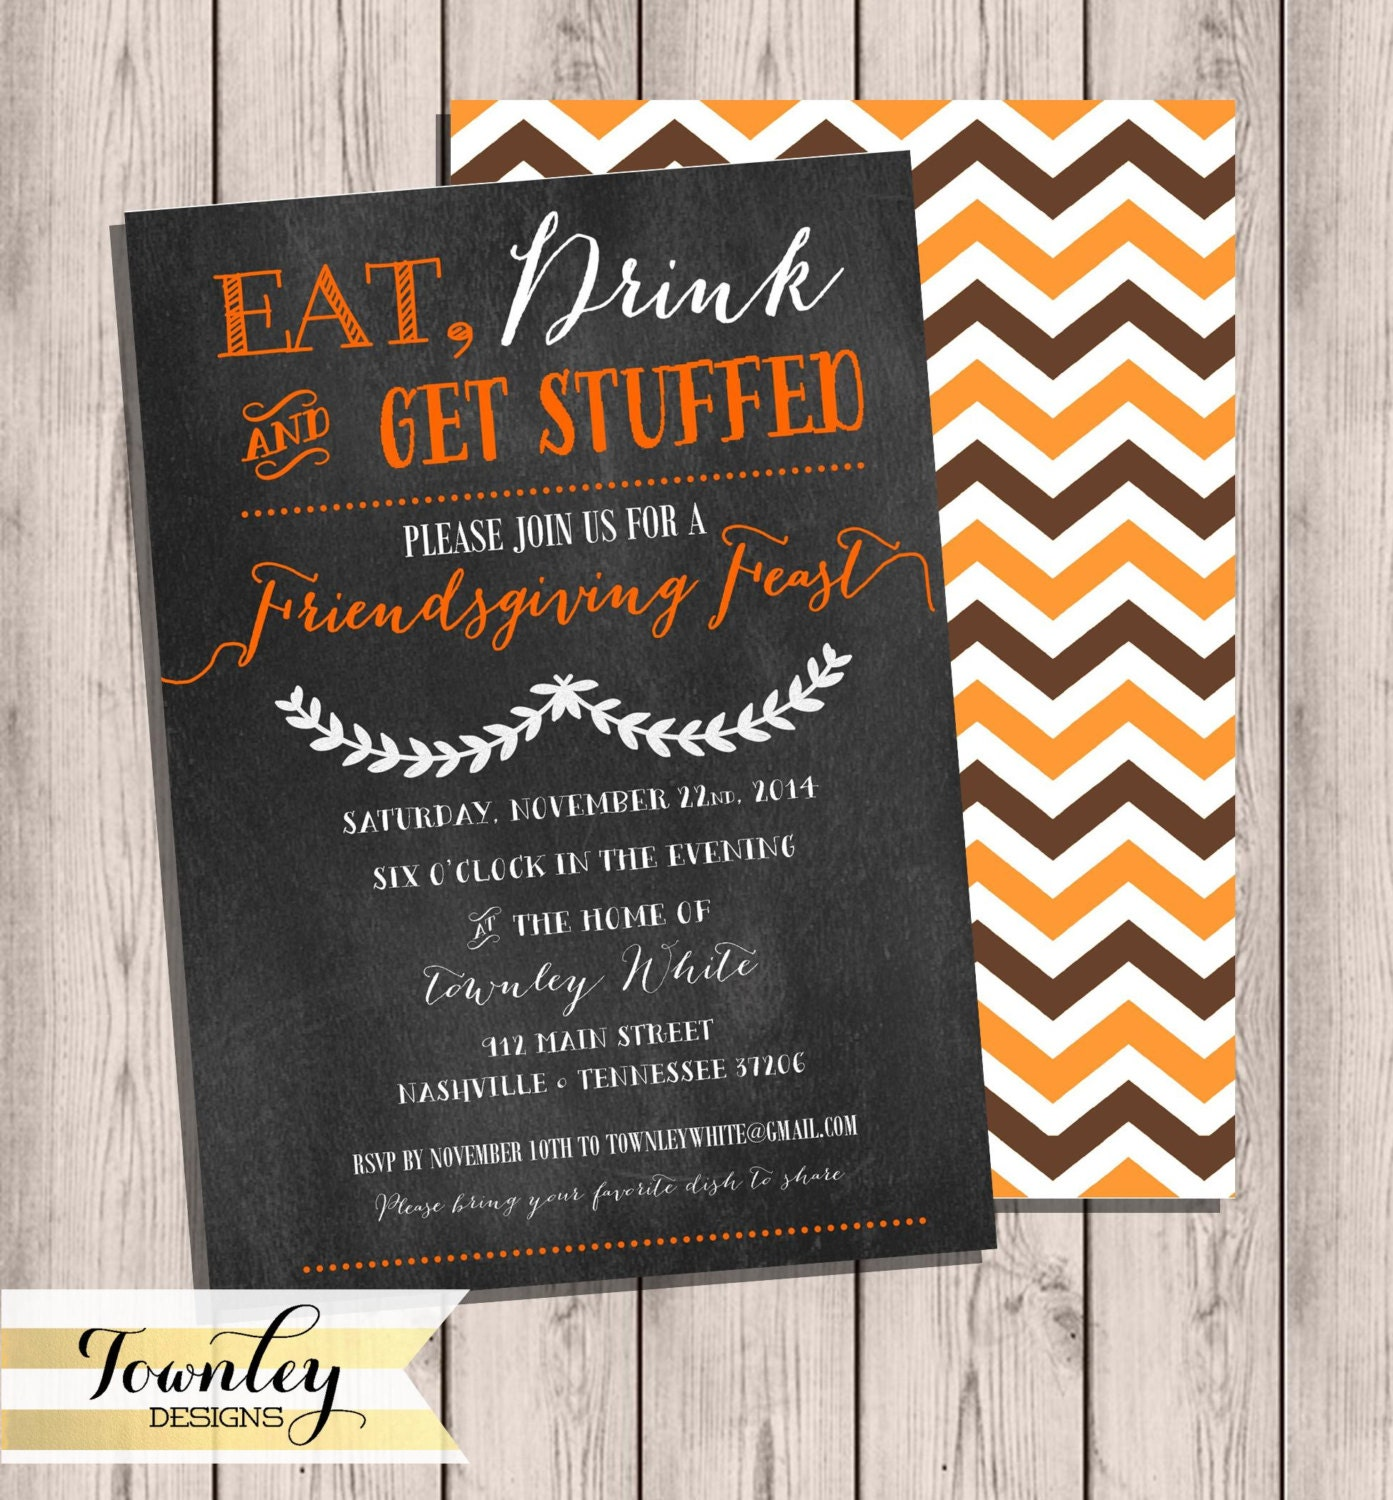 Friendsgiving Invitation Eat Drink & Be Stuffed Chalkboard